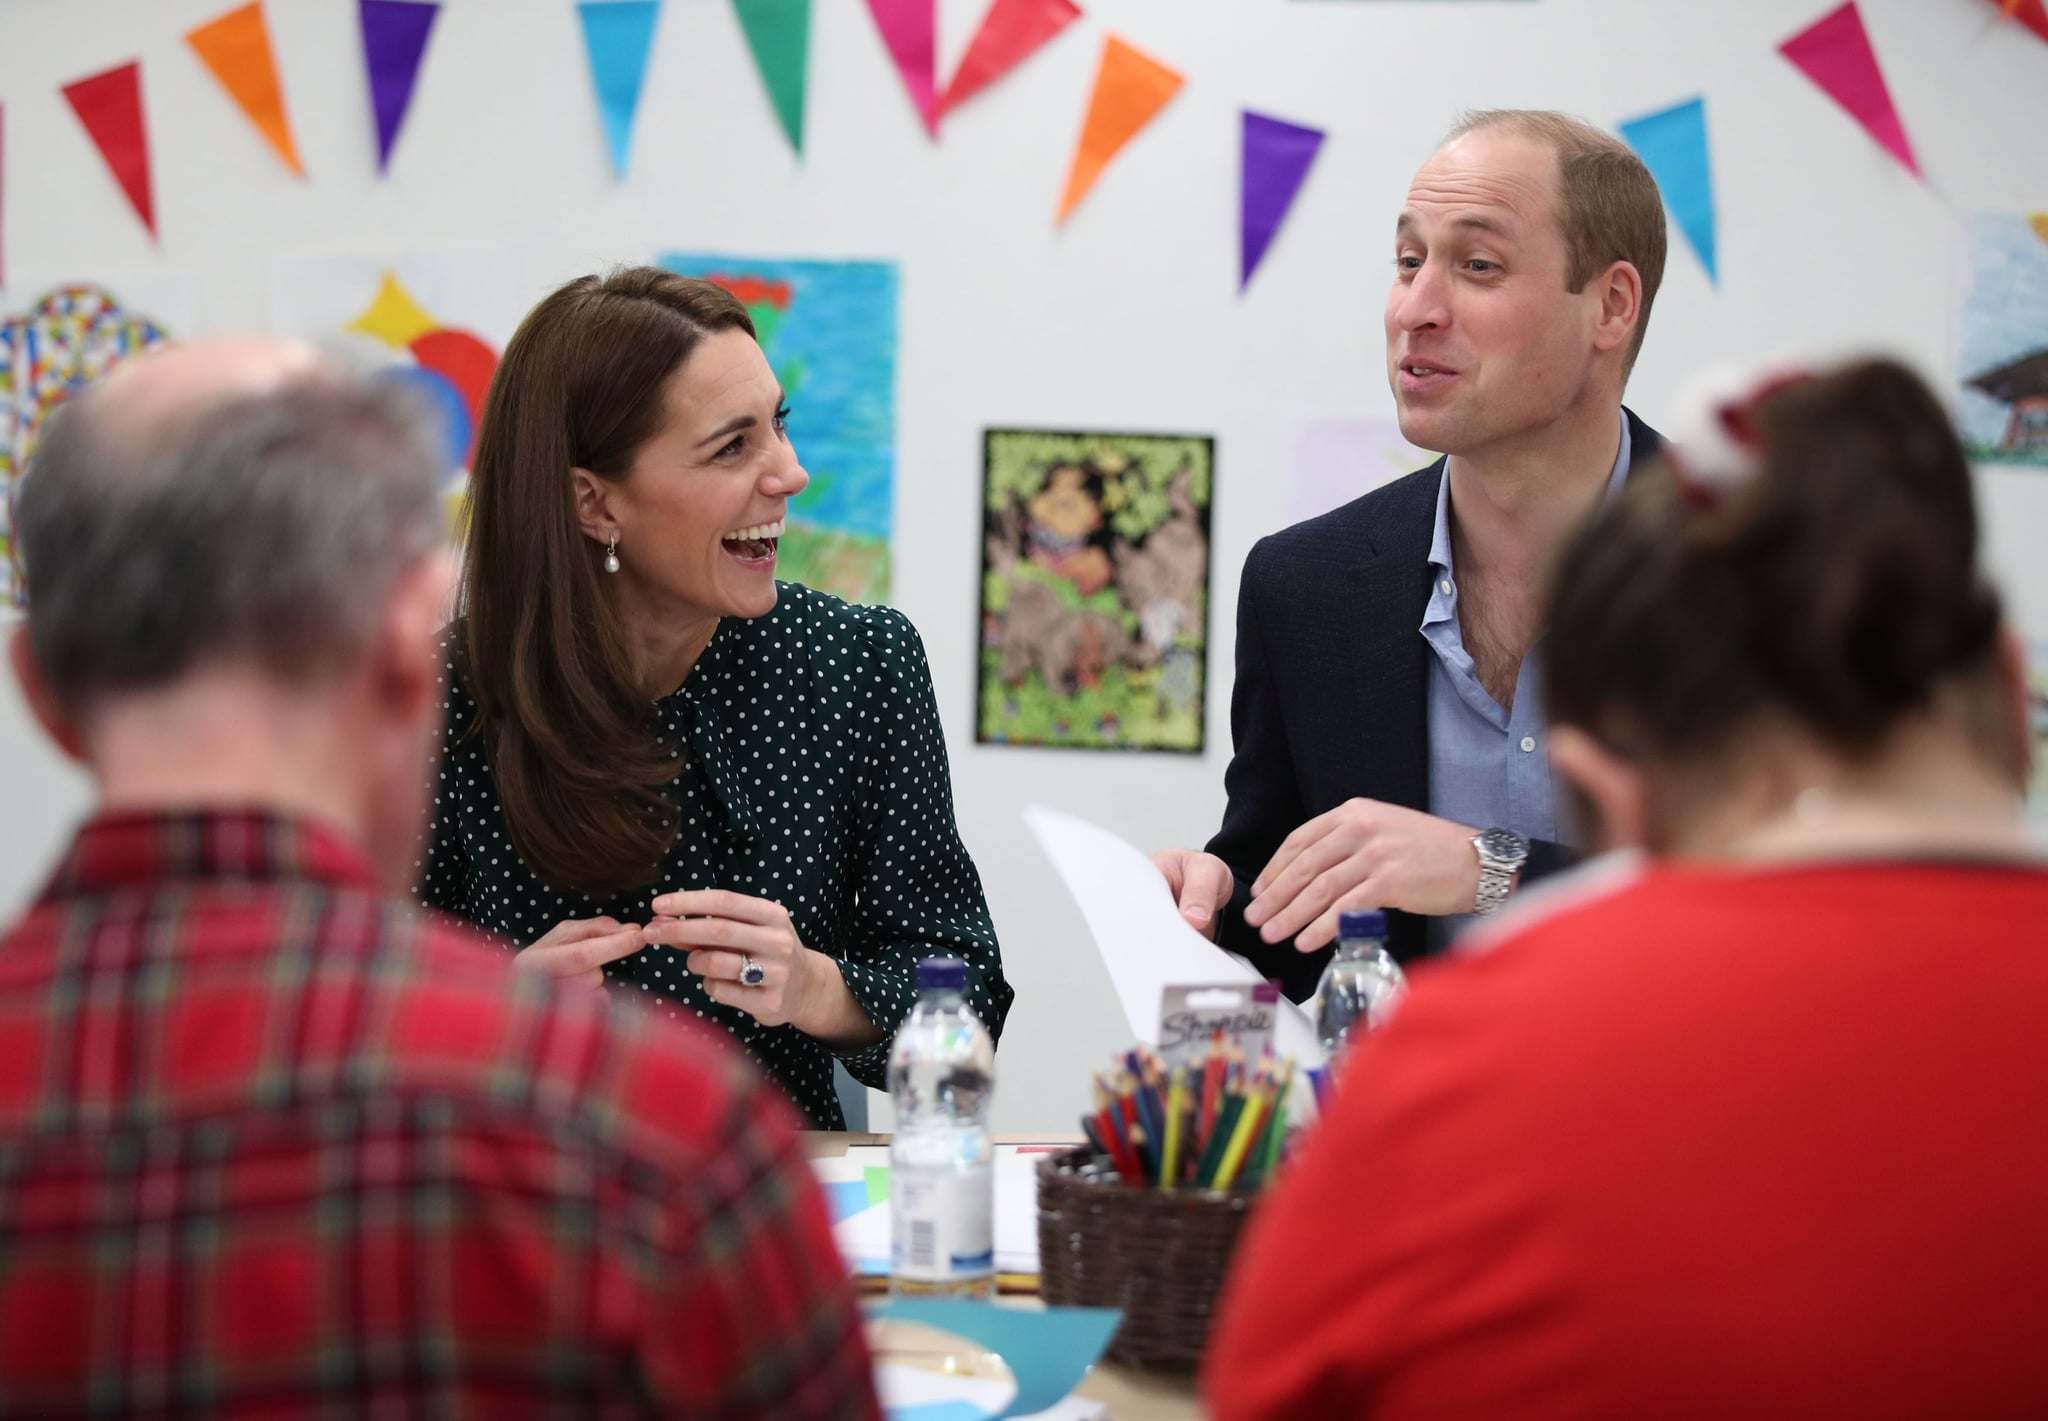 LONDON, ENGLAND - DECEMBER 11: Catherine, Duchess of Cambridge and Prince William, Duke of Cambridge take part in an art and craft session with clients during their visit to Evelina London Children's Hospital on December 11, 2018 in London, England.  Evelina London, which is part of Guy's and St Thomas' NHS Foundation Trust, is preparing to mark its 150th anniversary in 2019. (Photo by Yui Mok - WPA Pool/Getty Images)